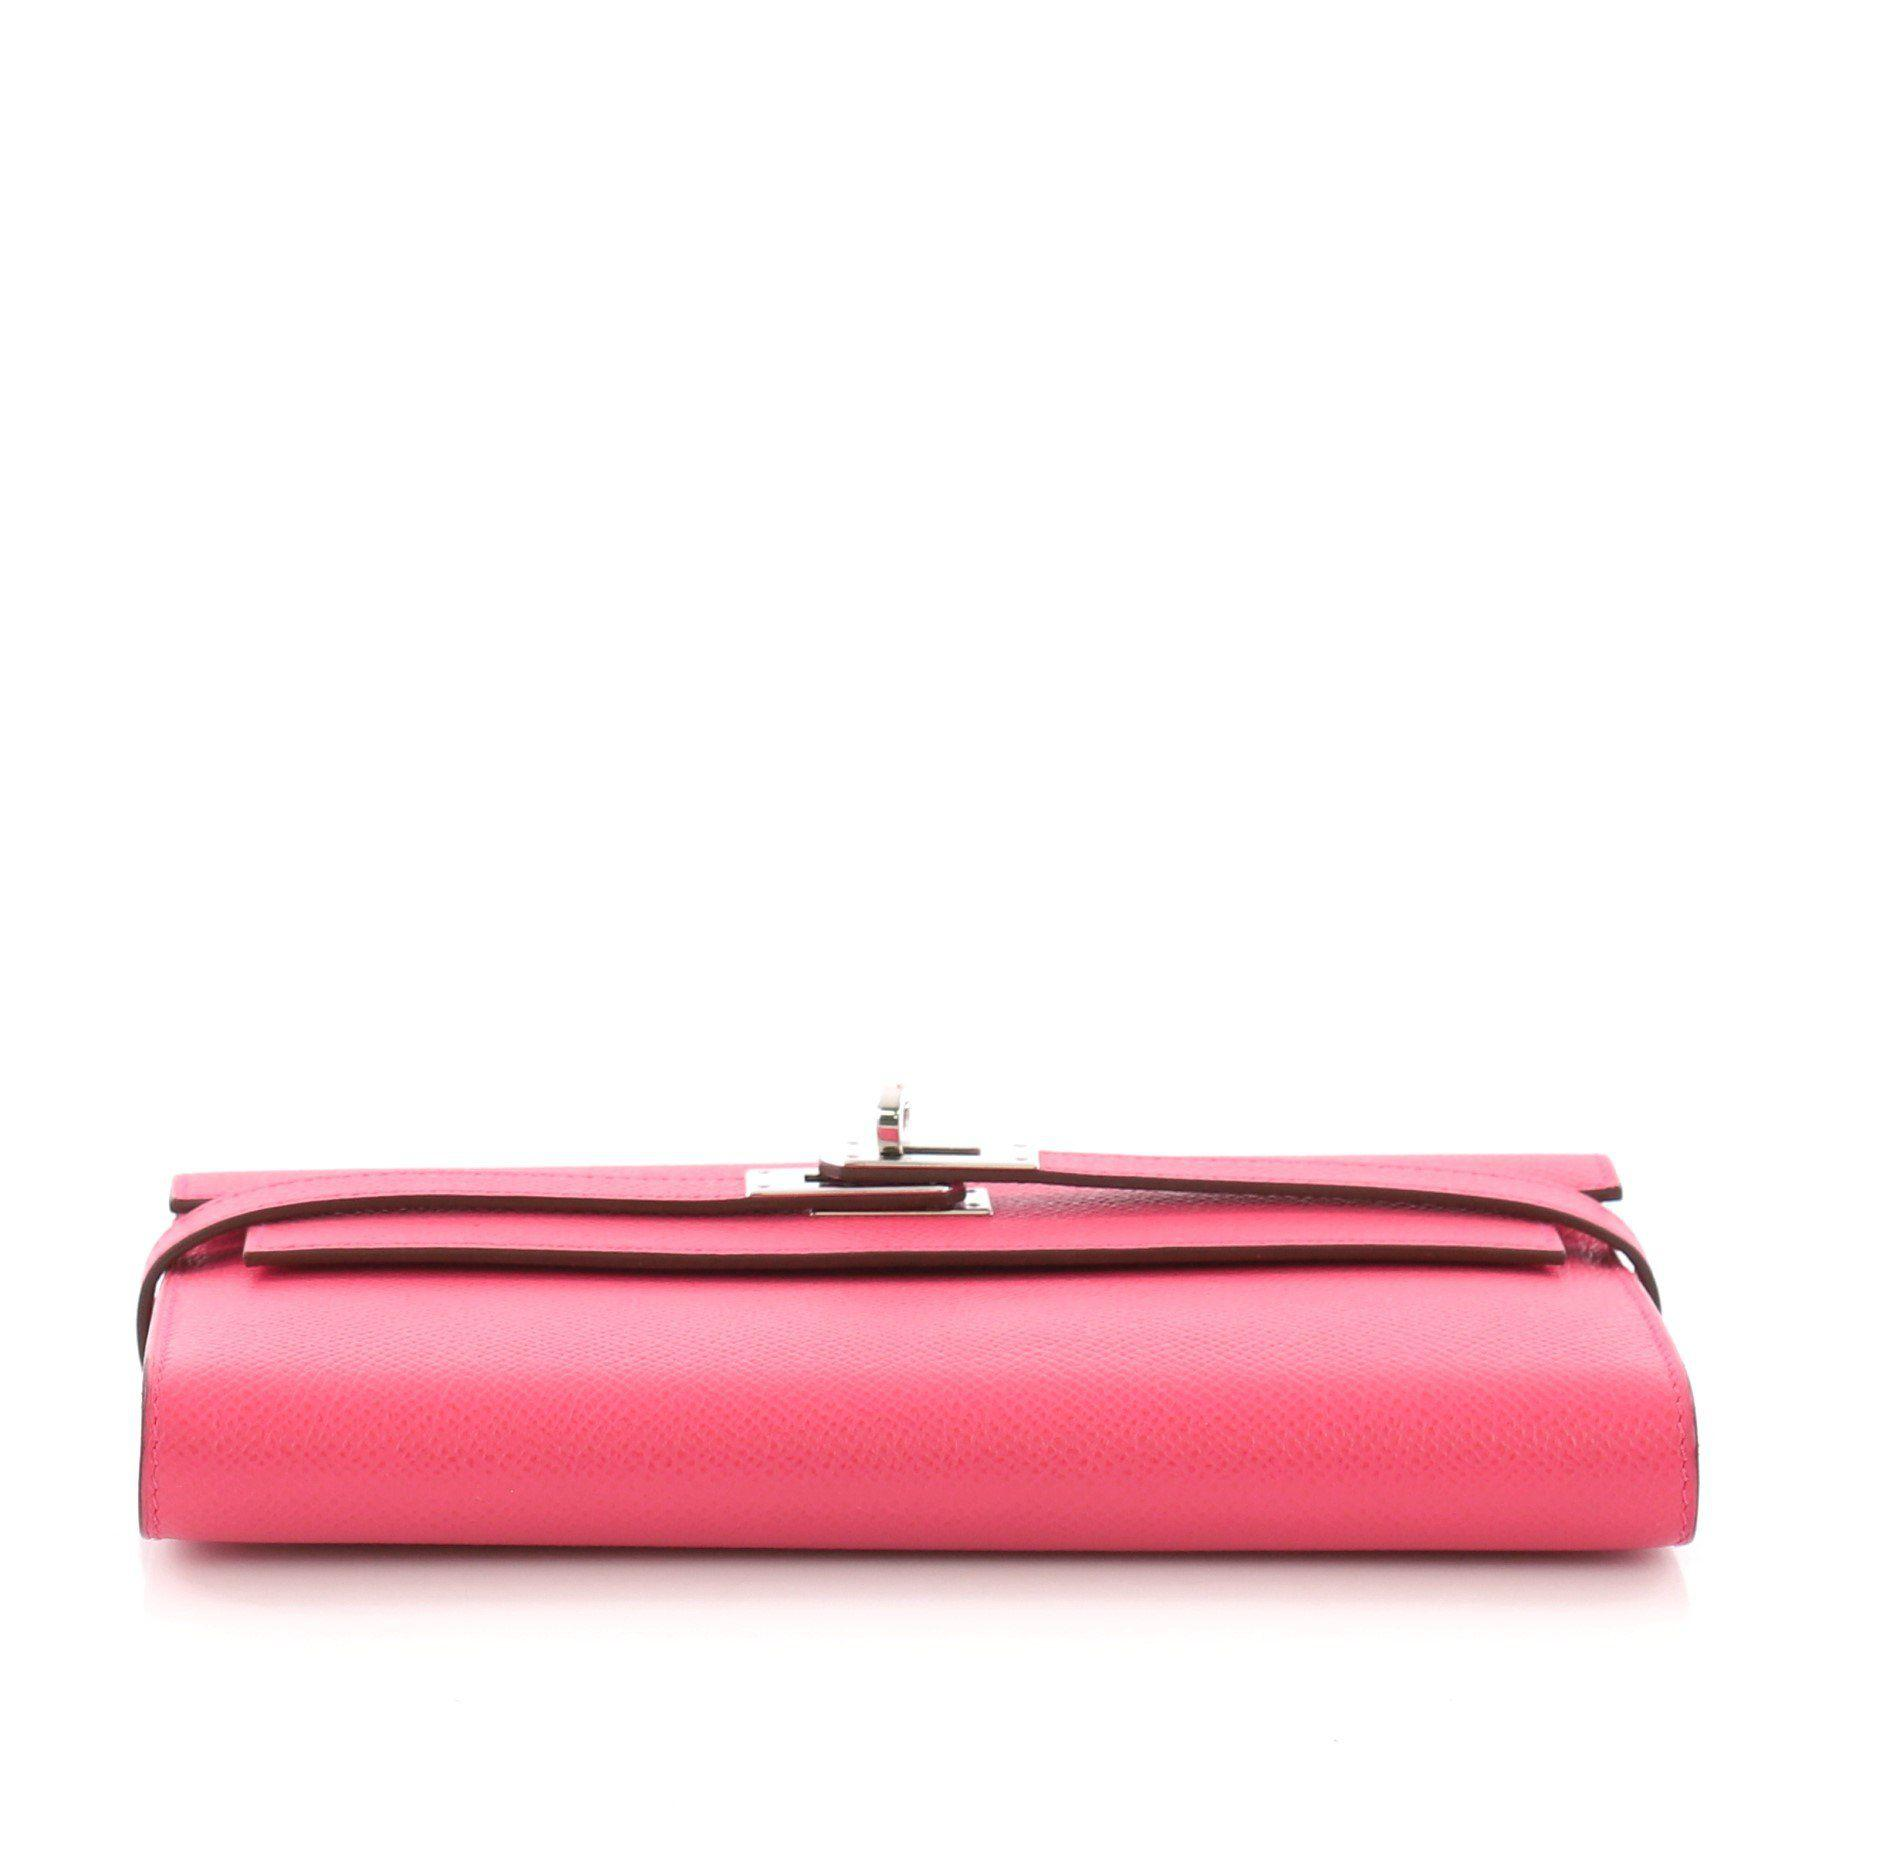 1a8d5a4b50a Hermès - Pink Pre Owned Kelly Wallet Epsom Long - Lyst. View fullscreen